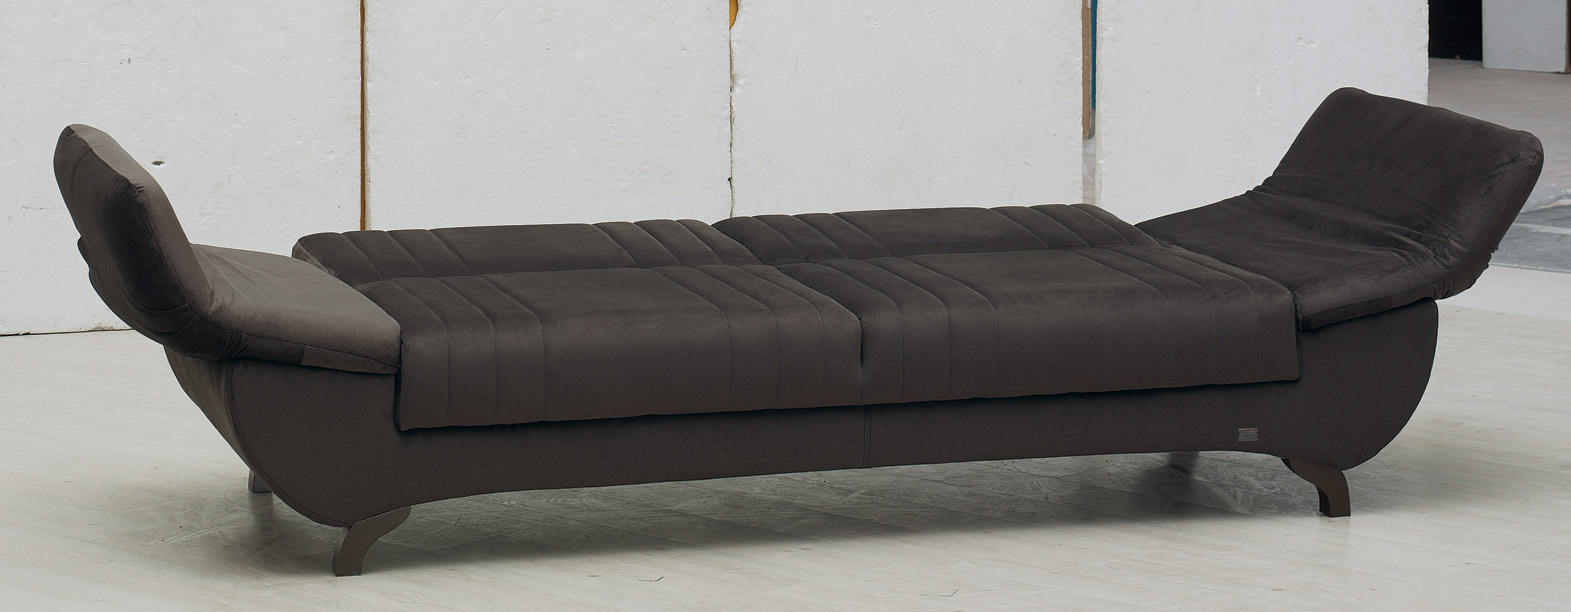 Florida sofa bed by meyan furniture for Sectional sleeper sofa florida